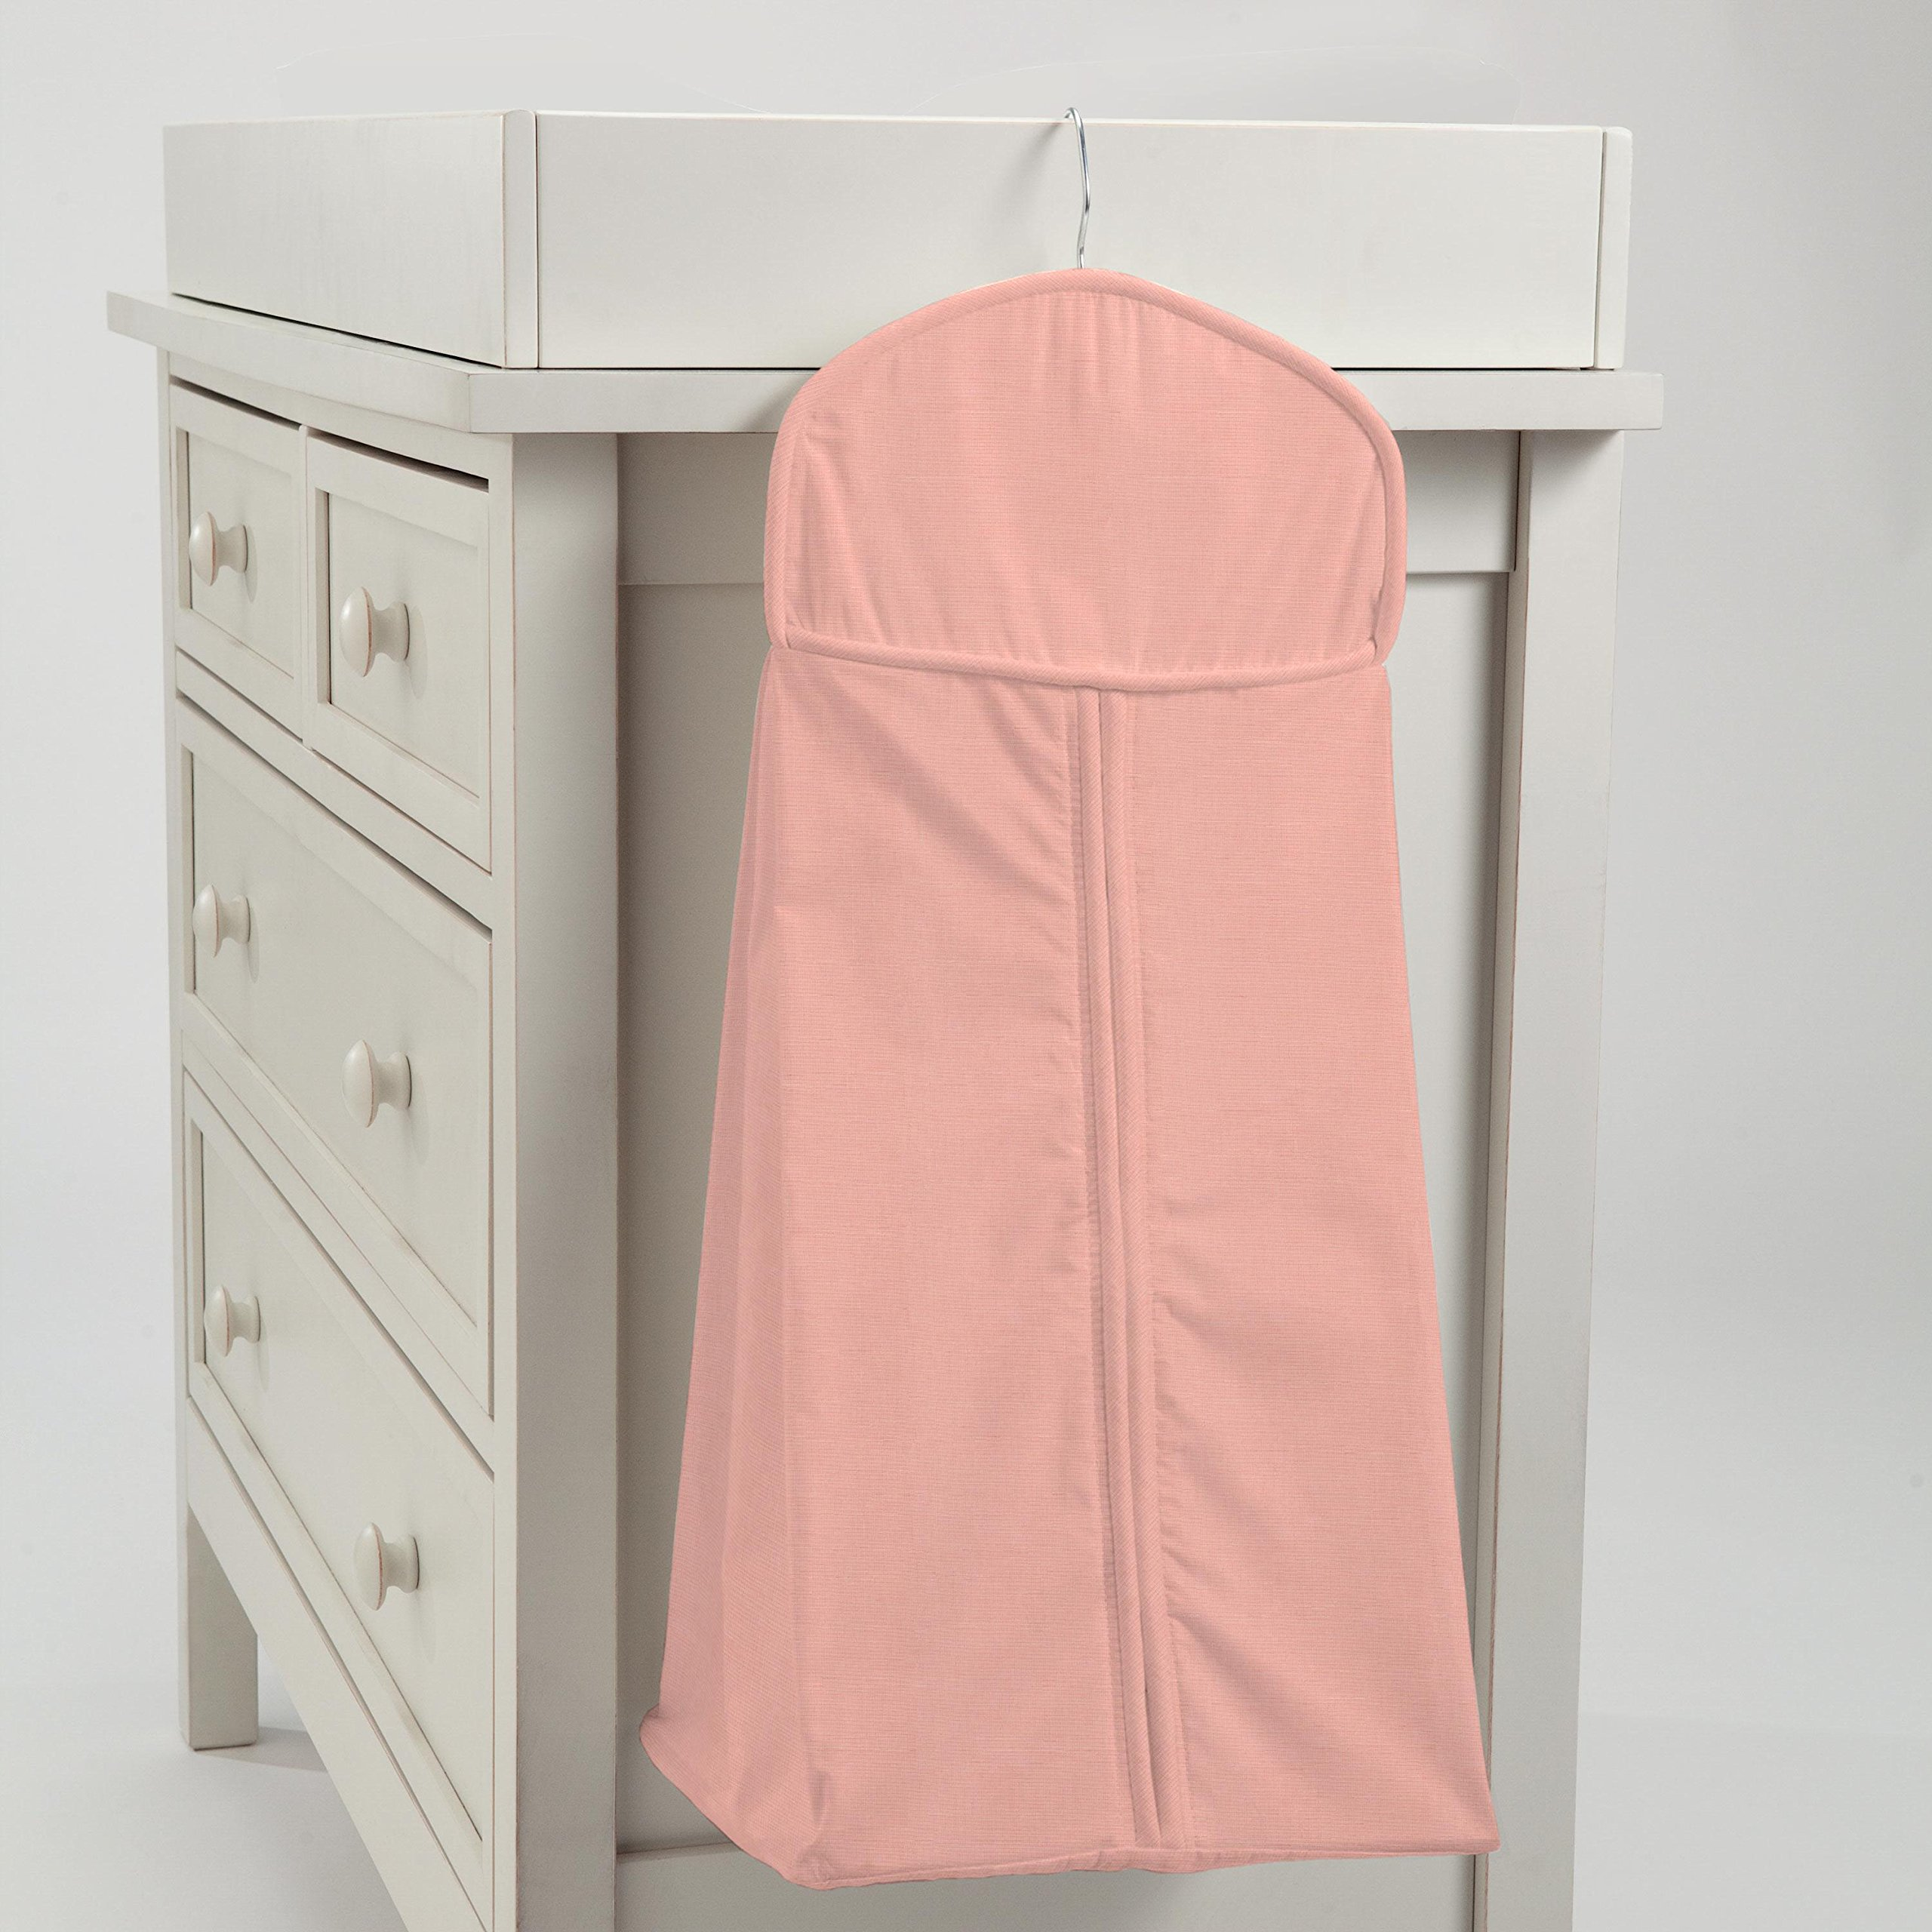 Carousel Designs Solid Light Coral Diaper Stacker by Carousel Designs